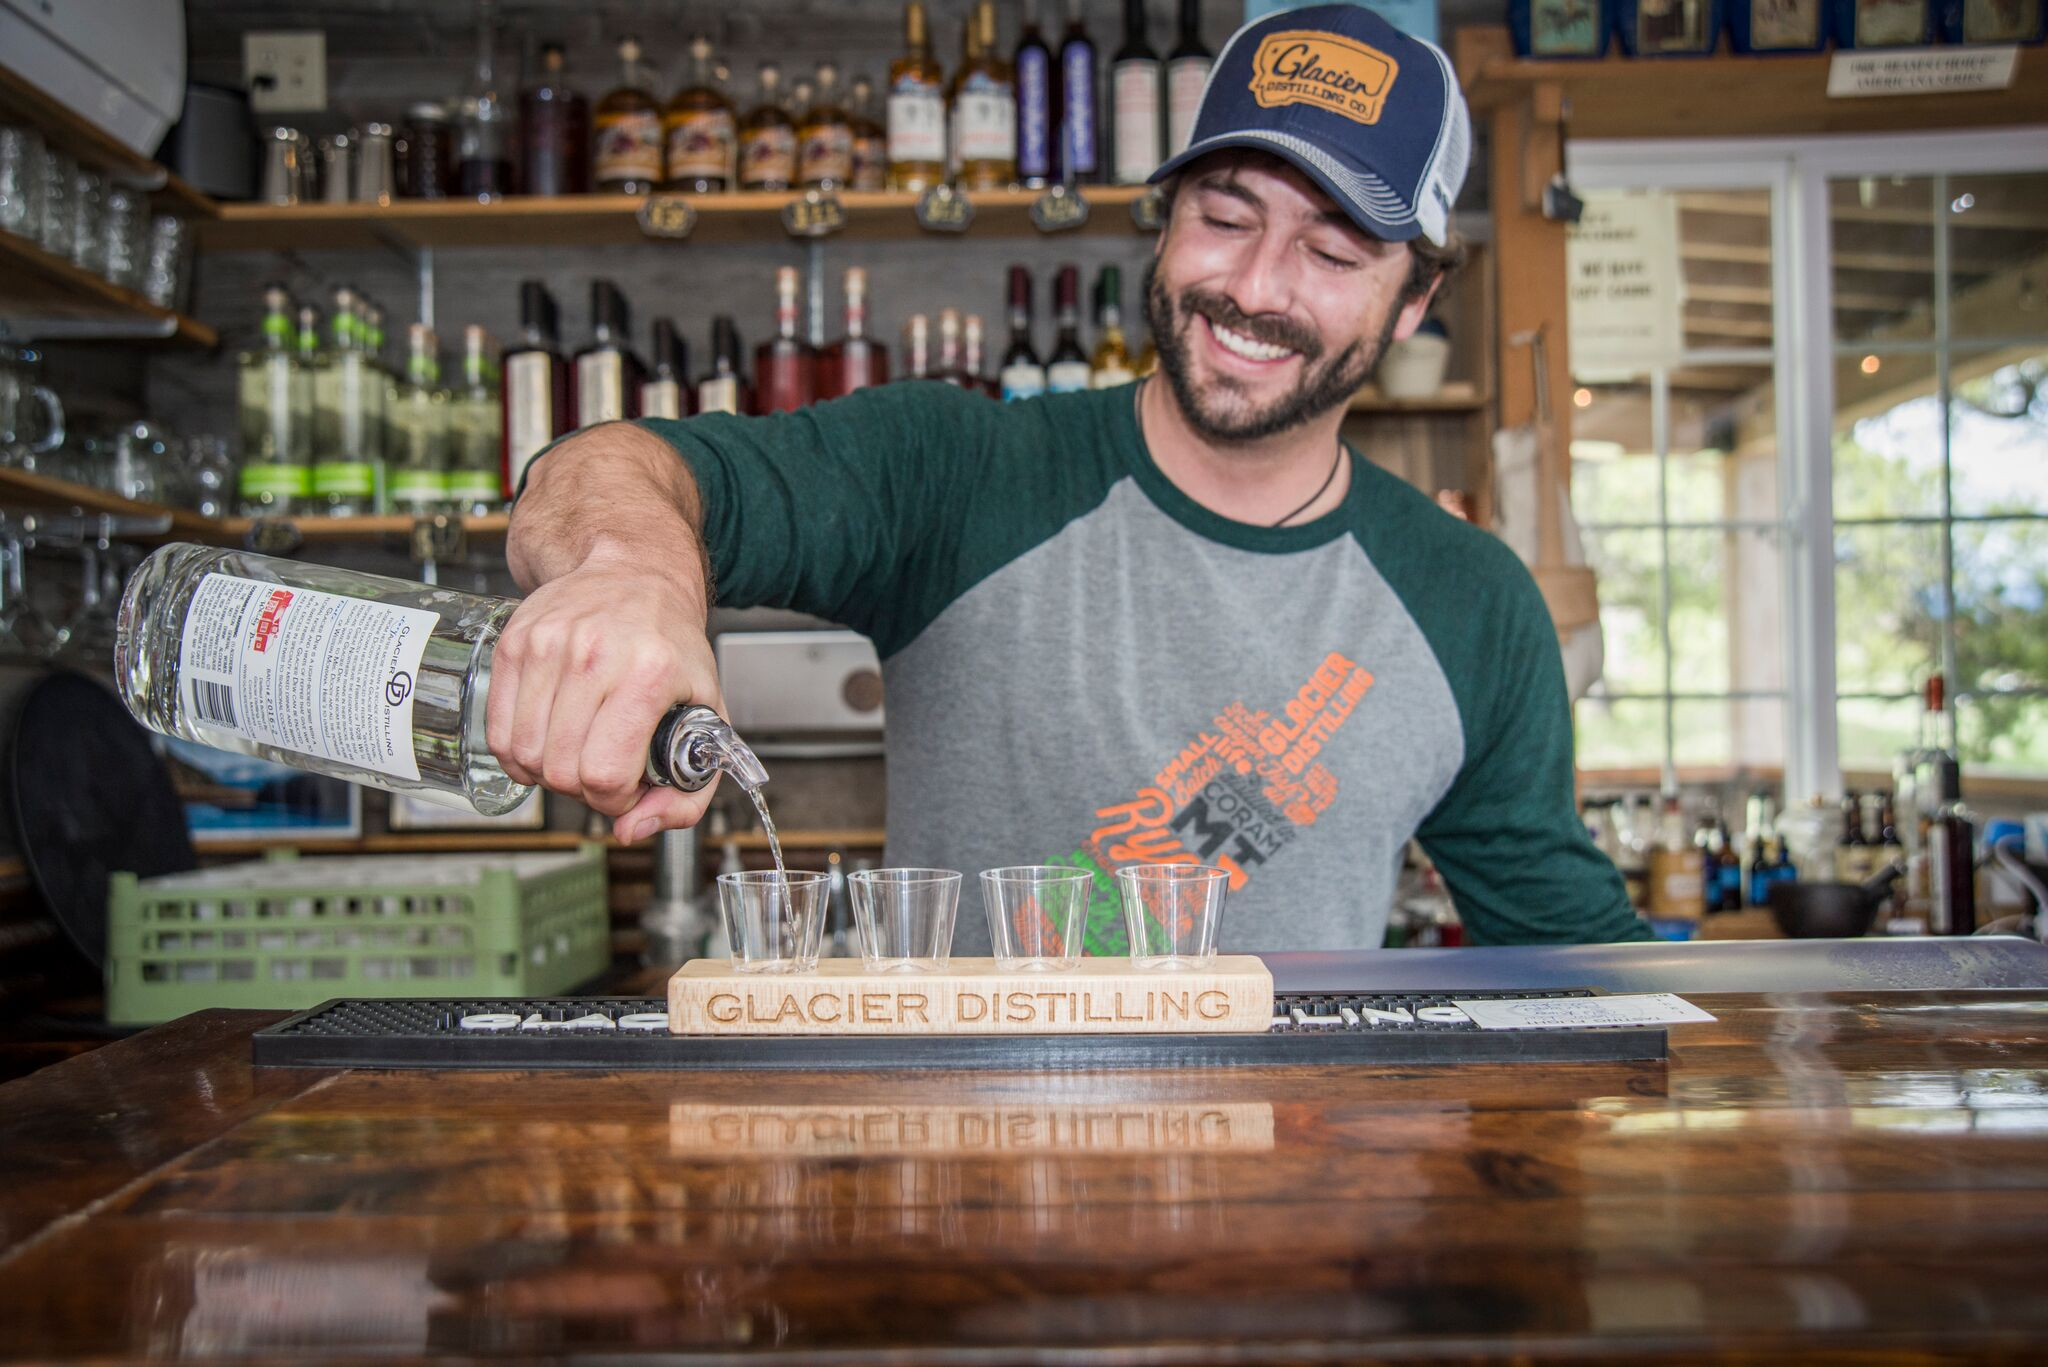 A bartender pours samples of fine spirits at Glacier Distilling in Corman, Montana.